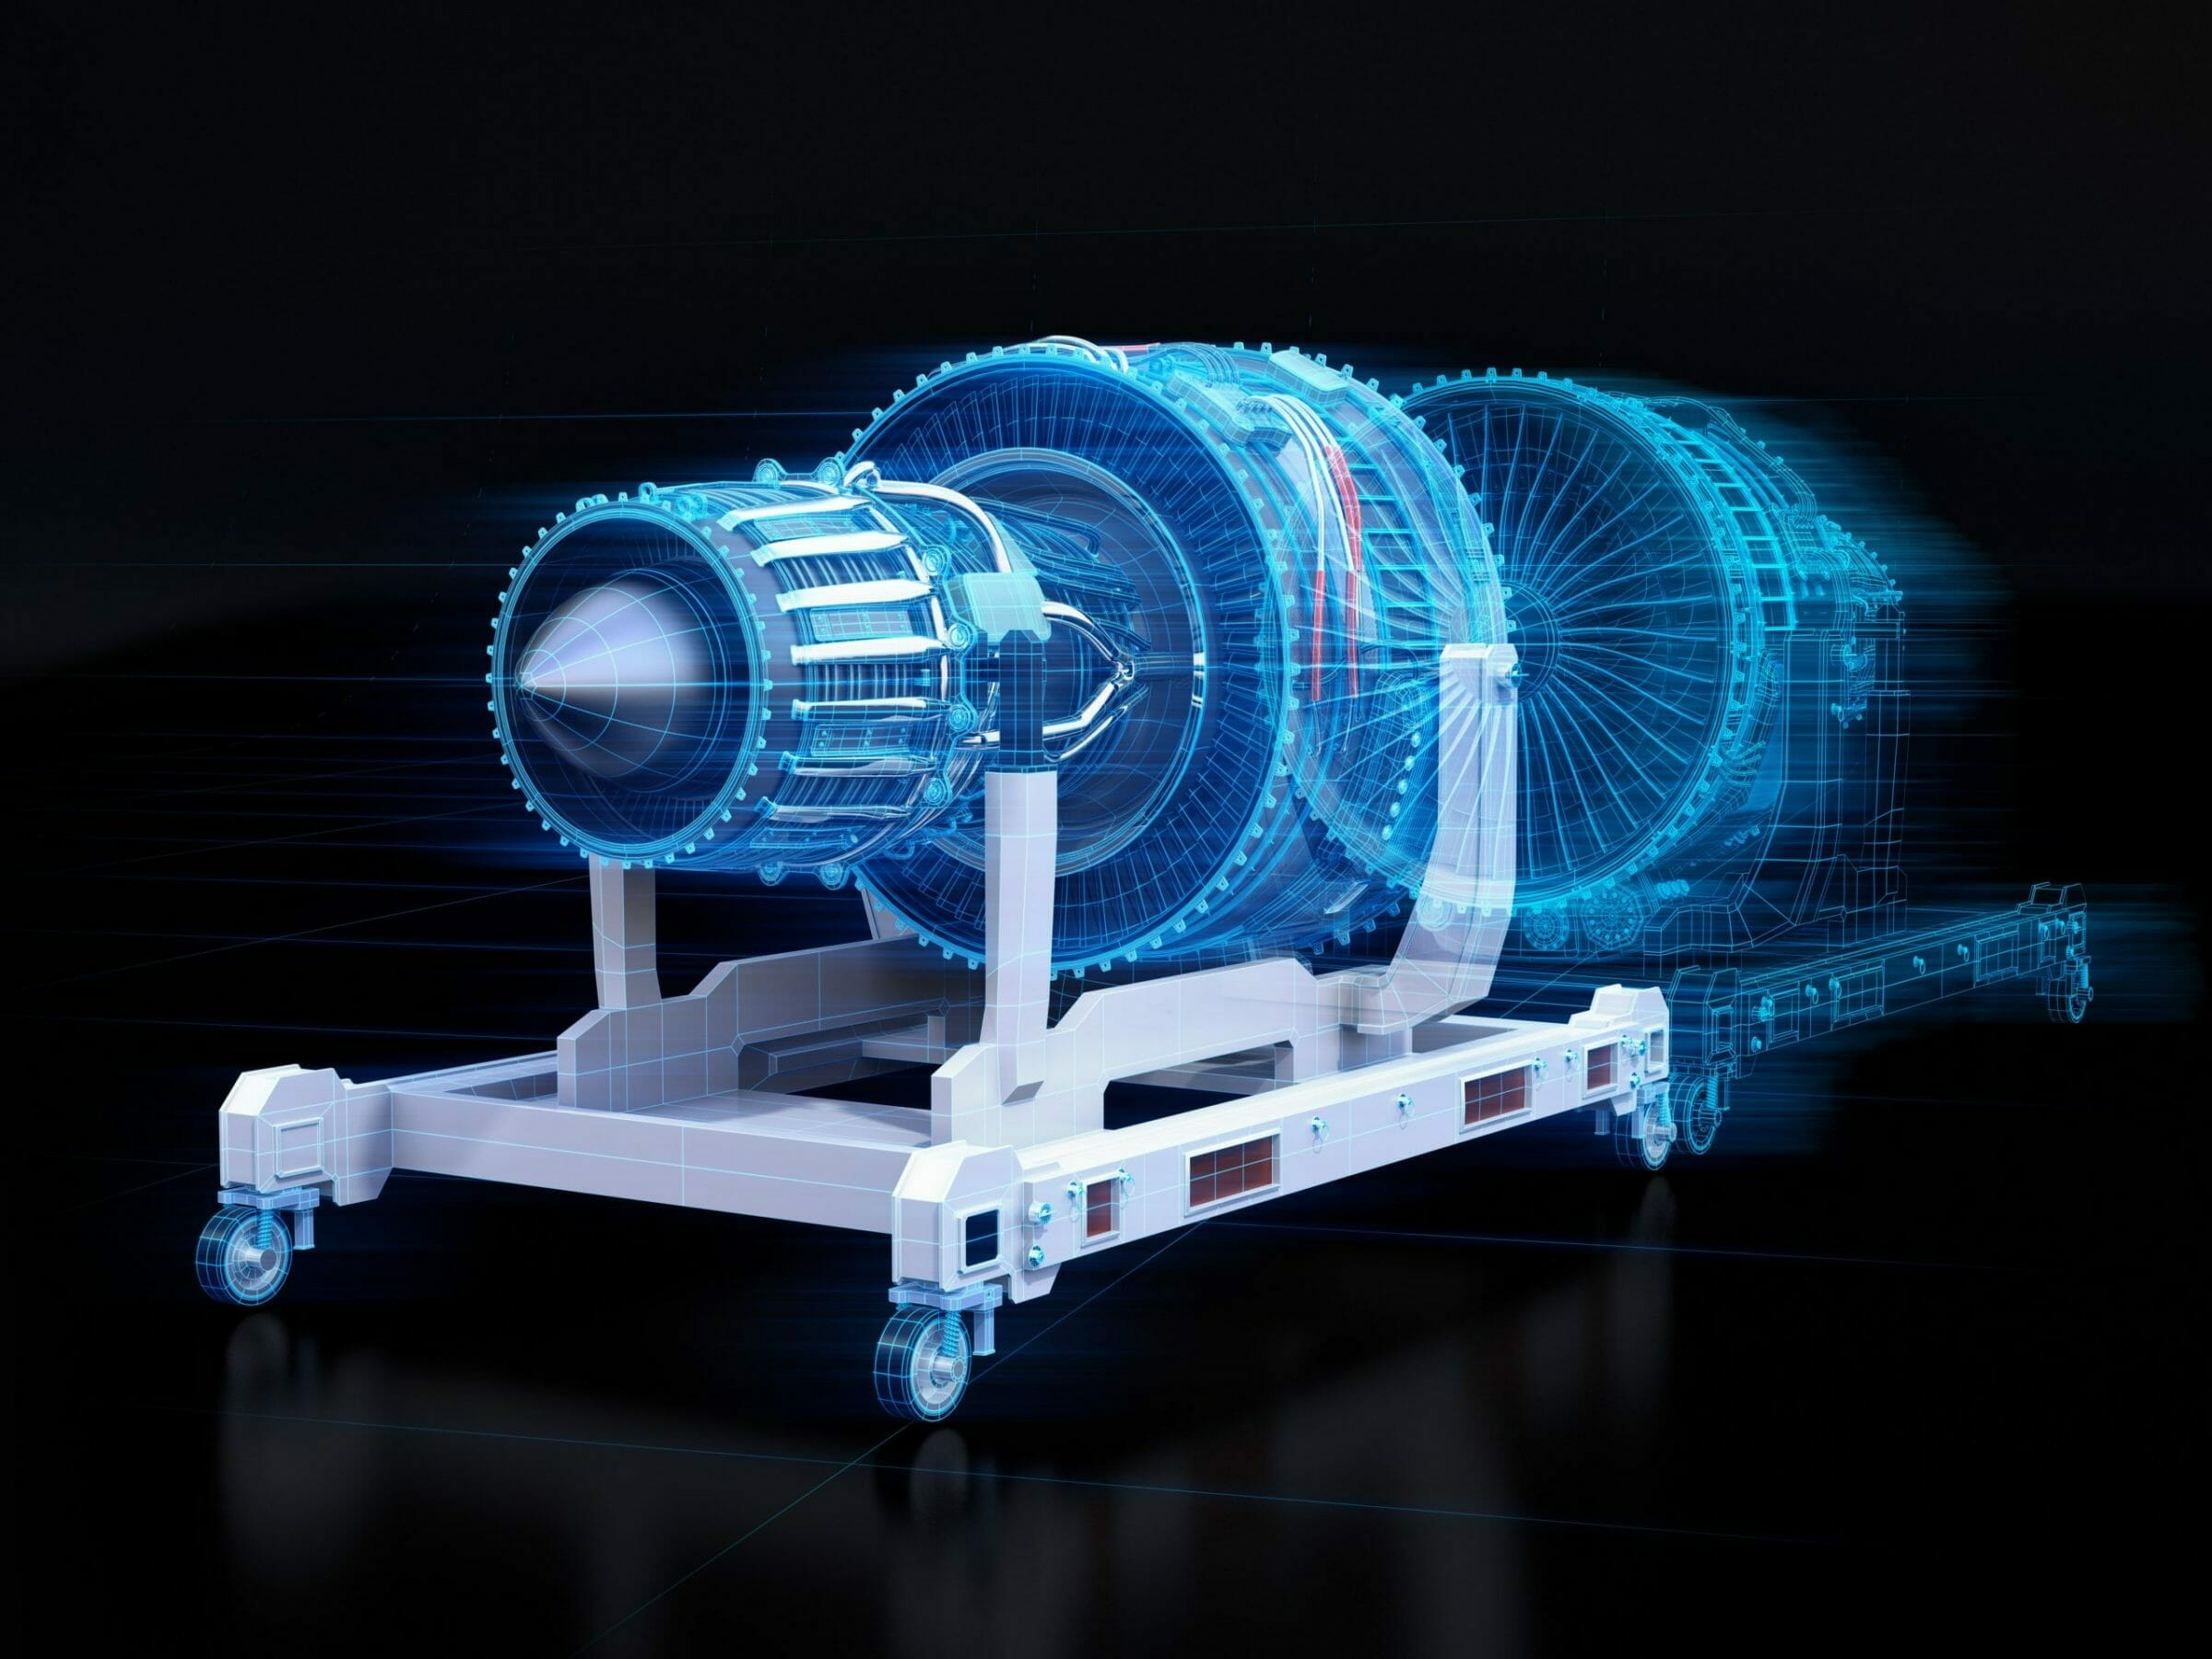 Wireframe rendering of turbojet engine and mirrored physical body on black background